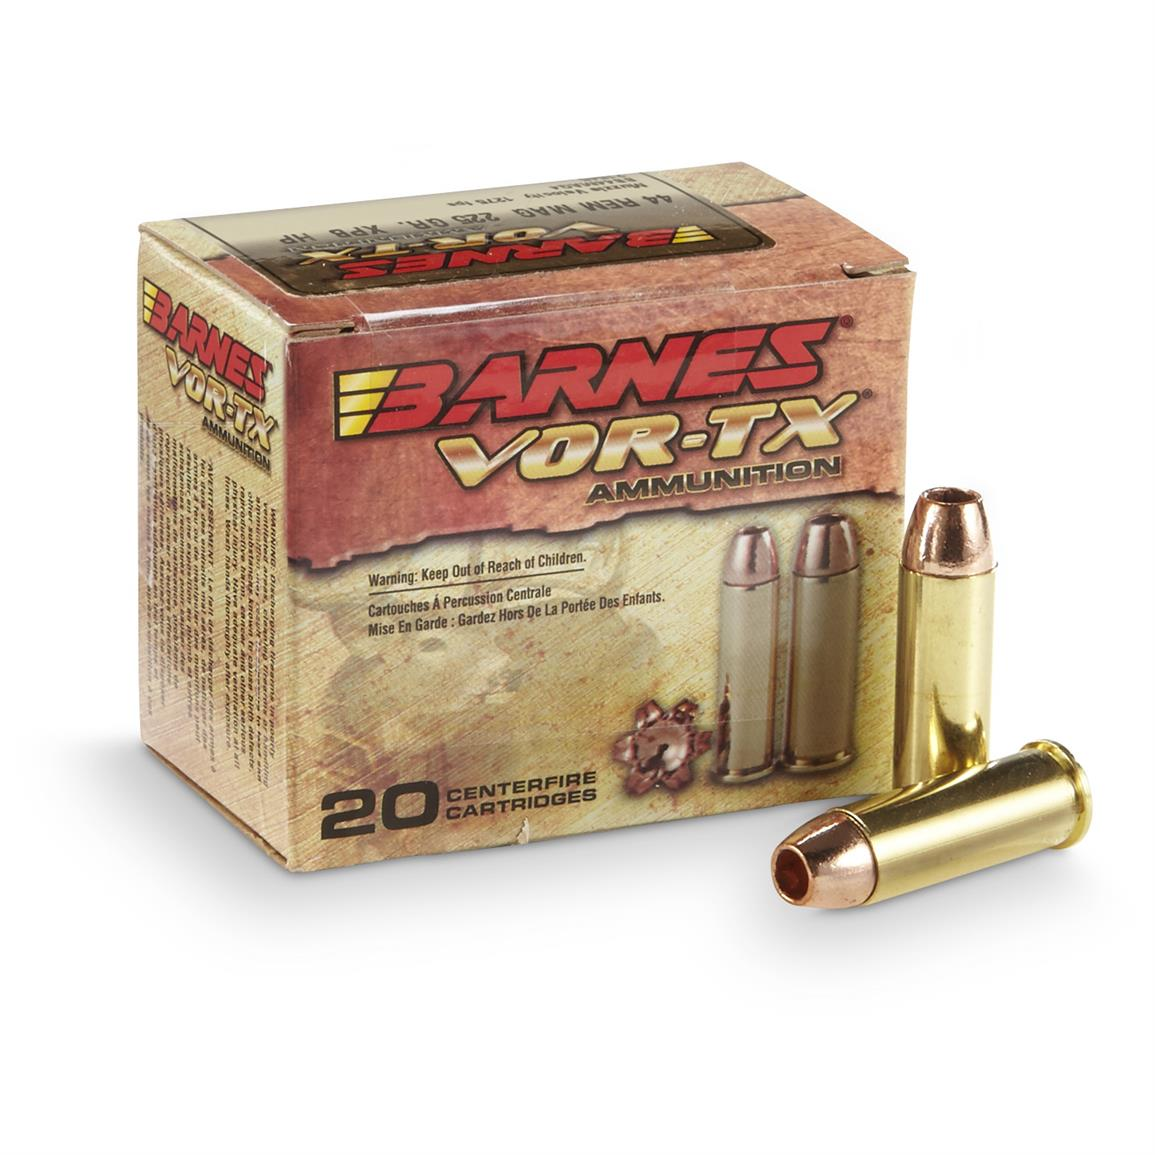 Barnes VOR-TX, .44 Remington Magnum, XPB HP, 225 Grain, 20 Rounds